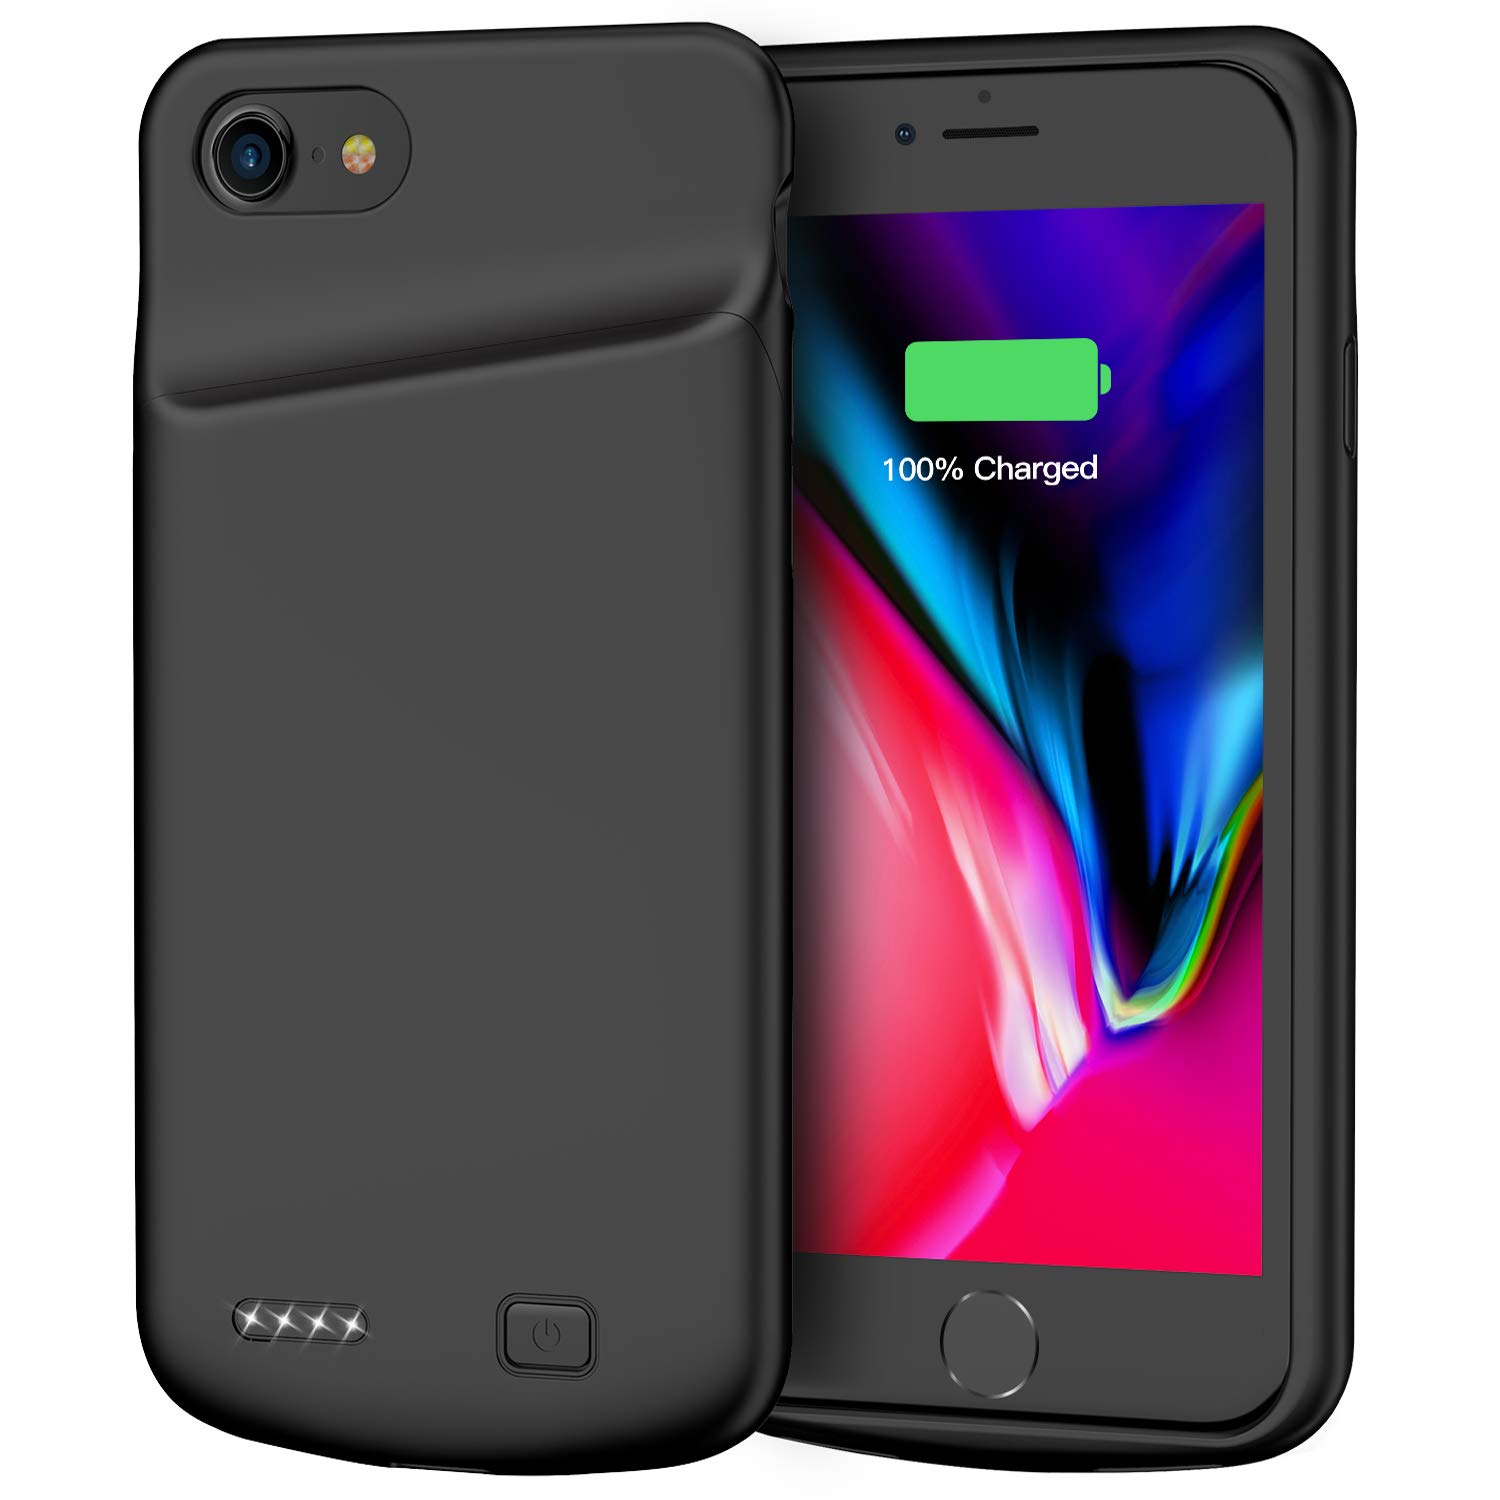 Battery Case for iPhone 7/8, 4500mAh Portable Rechargeable Protective Charging Case Compatible with iPhone 7/8 (4.7 inch) Extended Battery Pack Charger Case (Black) by Lonlif